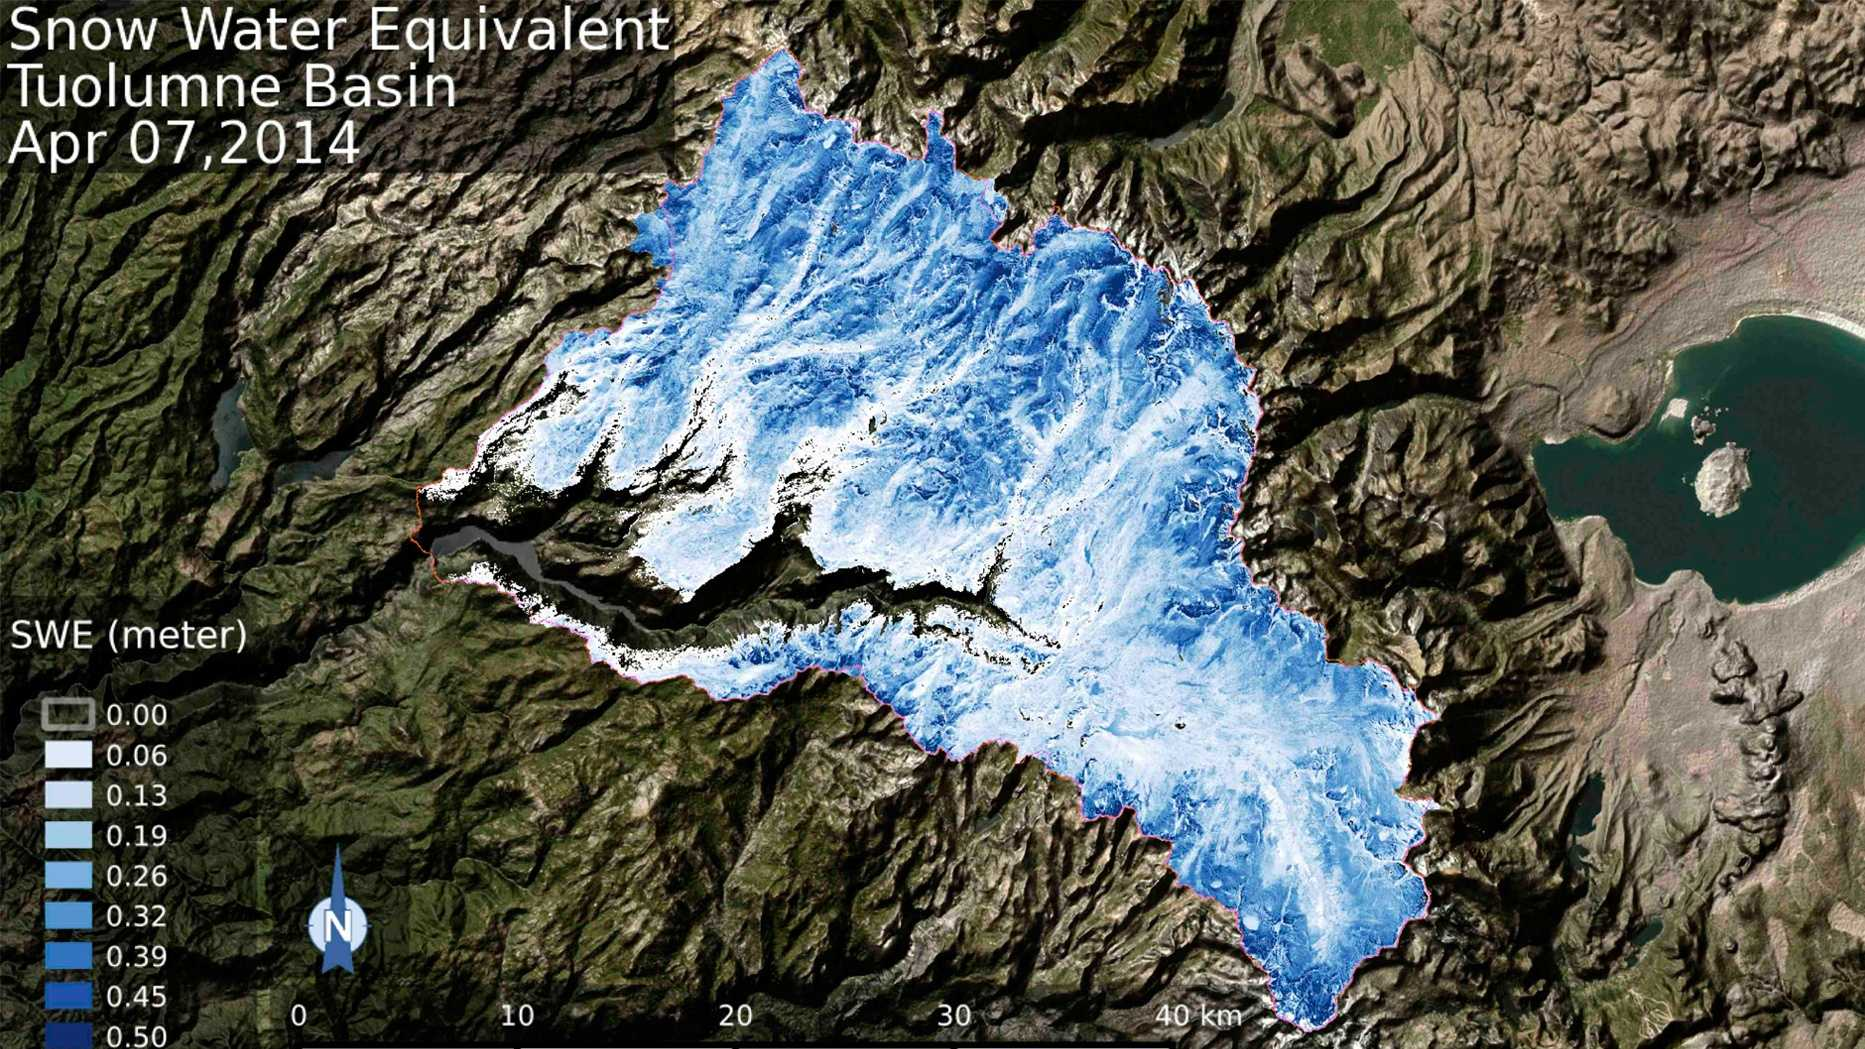 Spatial distribution of the total volume of water in the snowpack across the Tuolumne River Basin in March 2015 (bottom) and April 2014 (top) as measured by NASA's Airborne Snow Observatory.